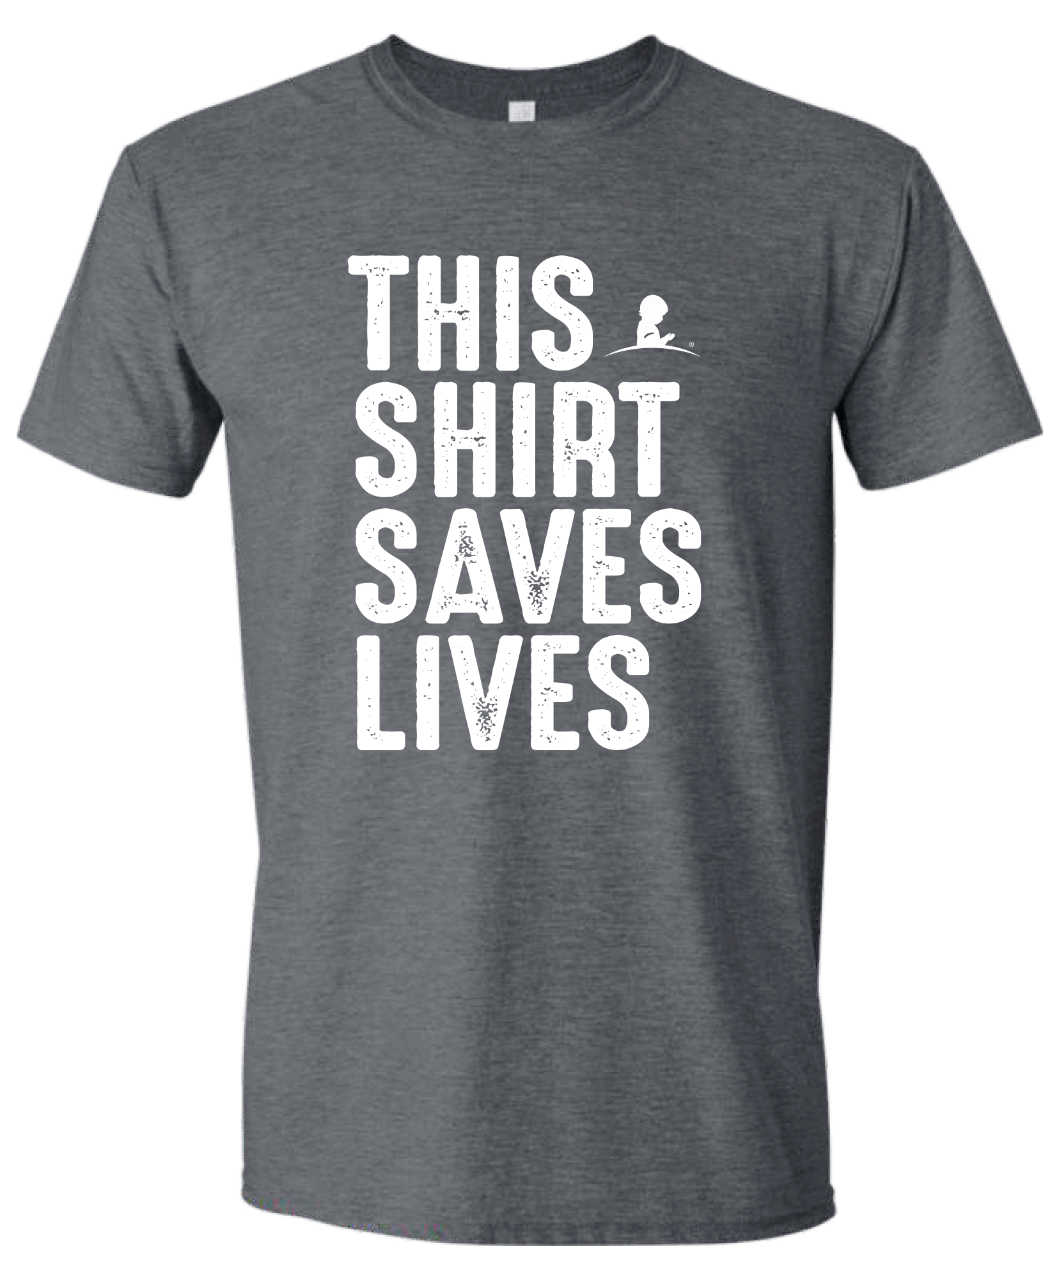 This Shirt Saves Lives charcoal grey T-shirt